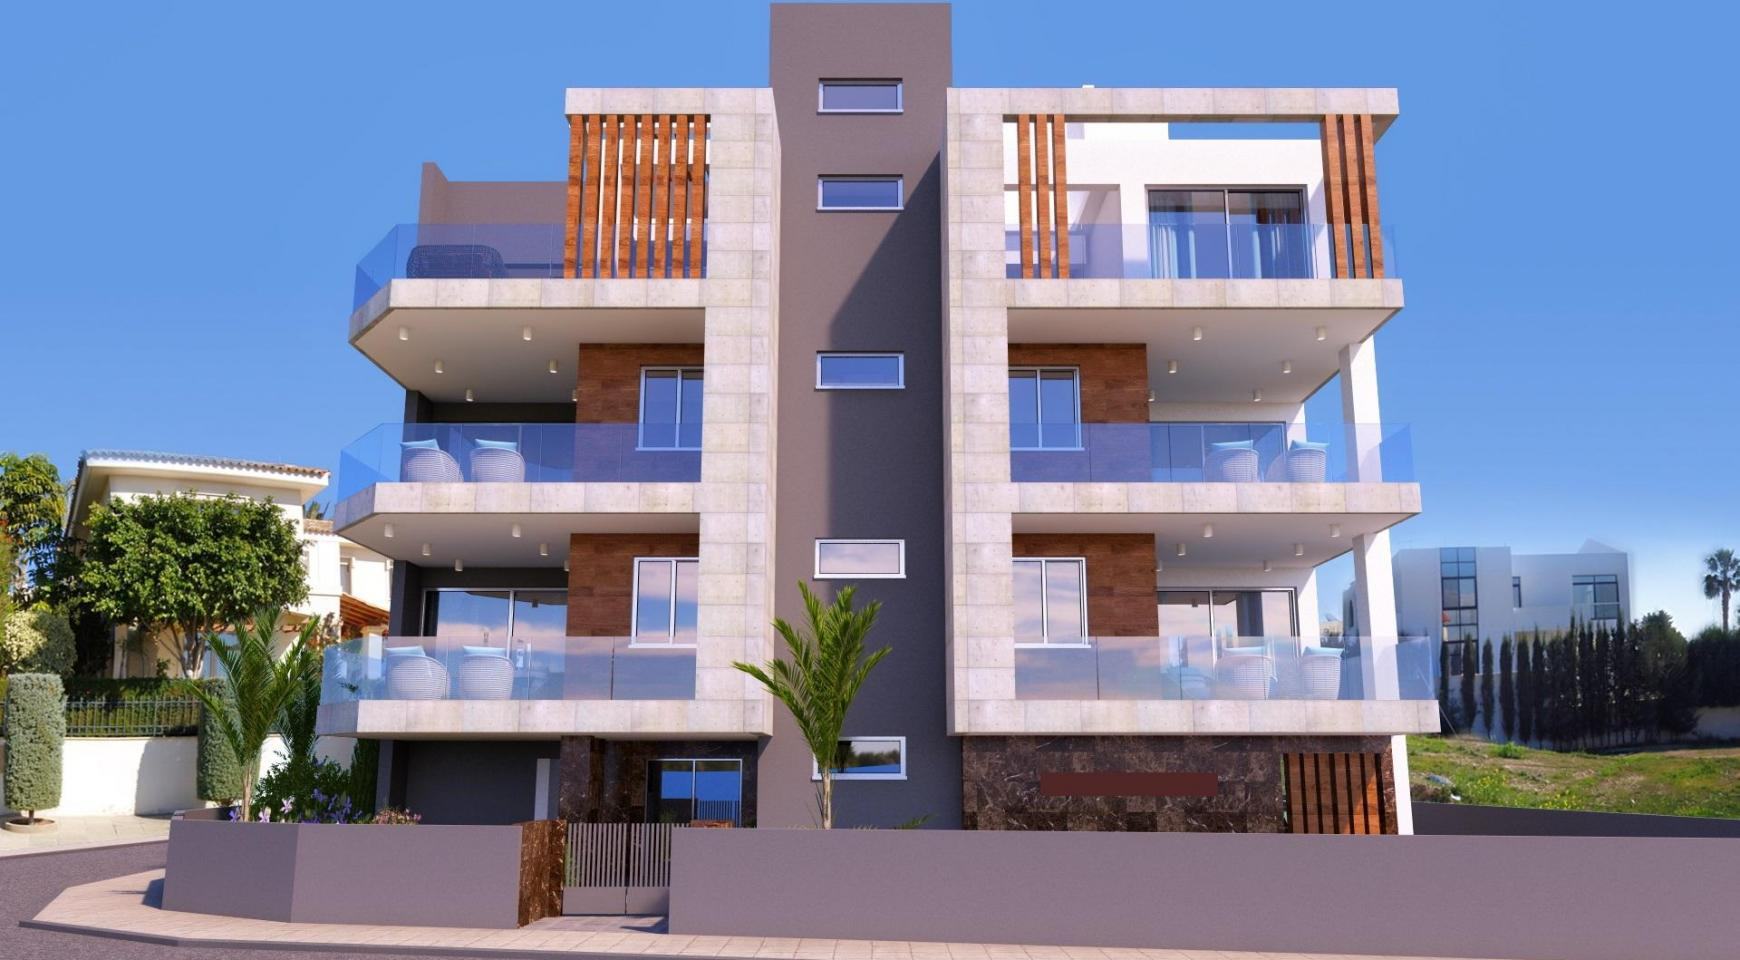 New 3 Bedroom Apartment in a Contemporay Building in Potamos Germasogeia - 2